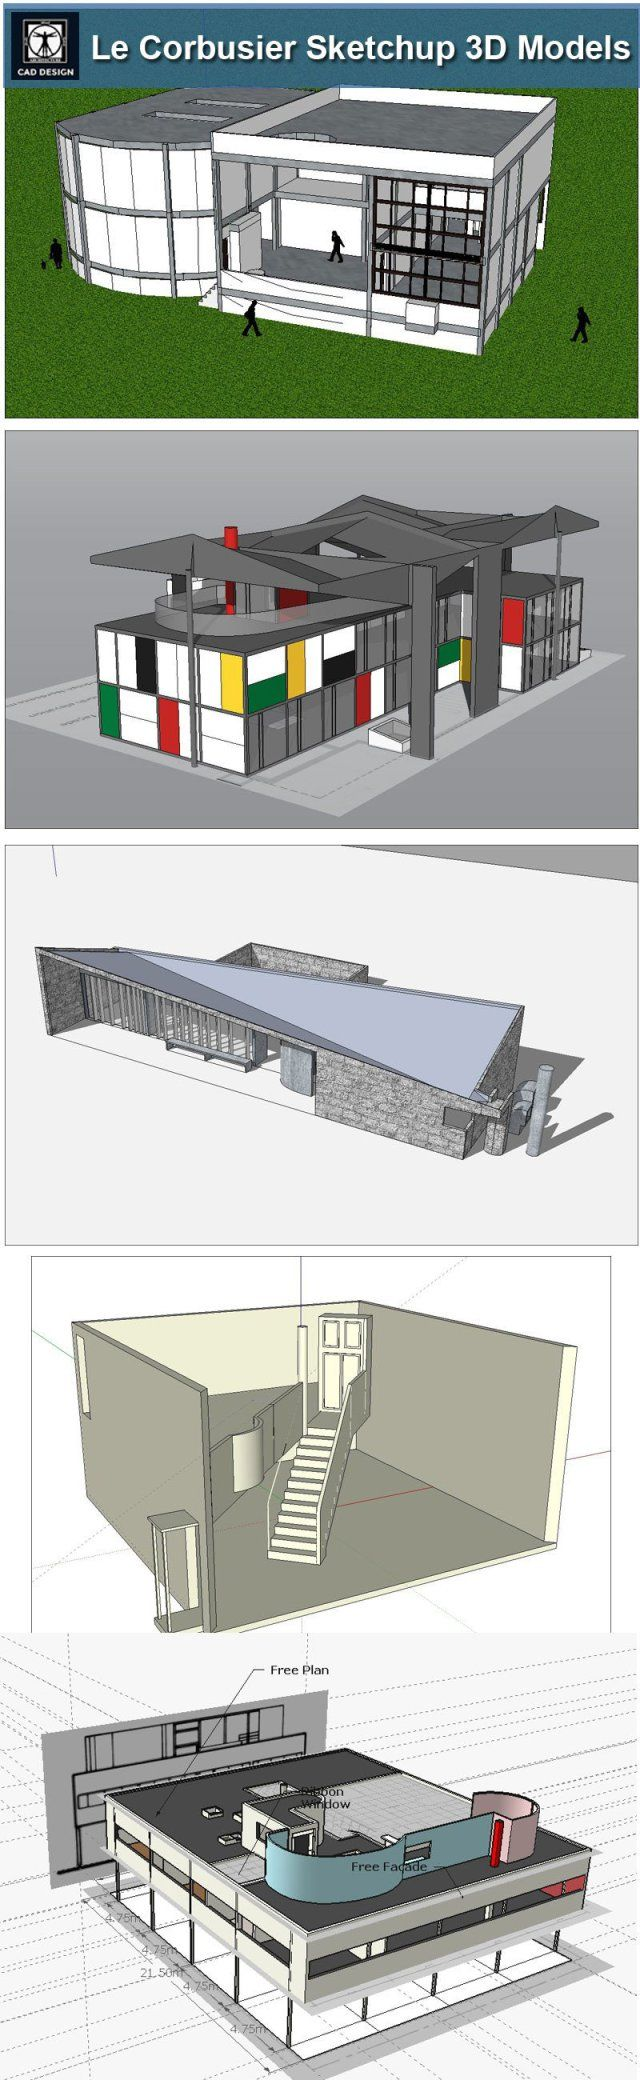 Download 24 types of le corbusier architecture sketchup 3d models skp file format